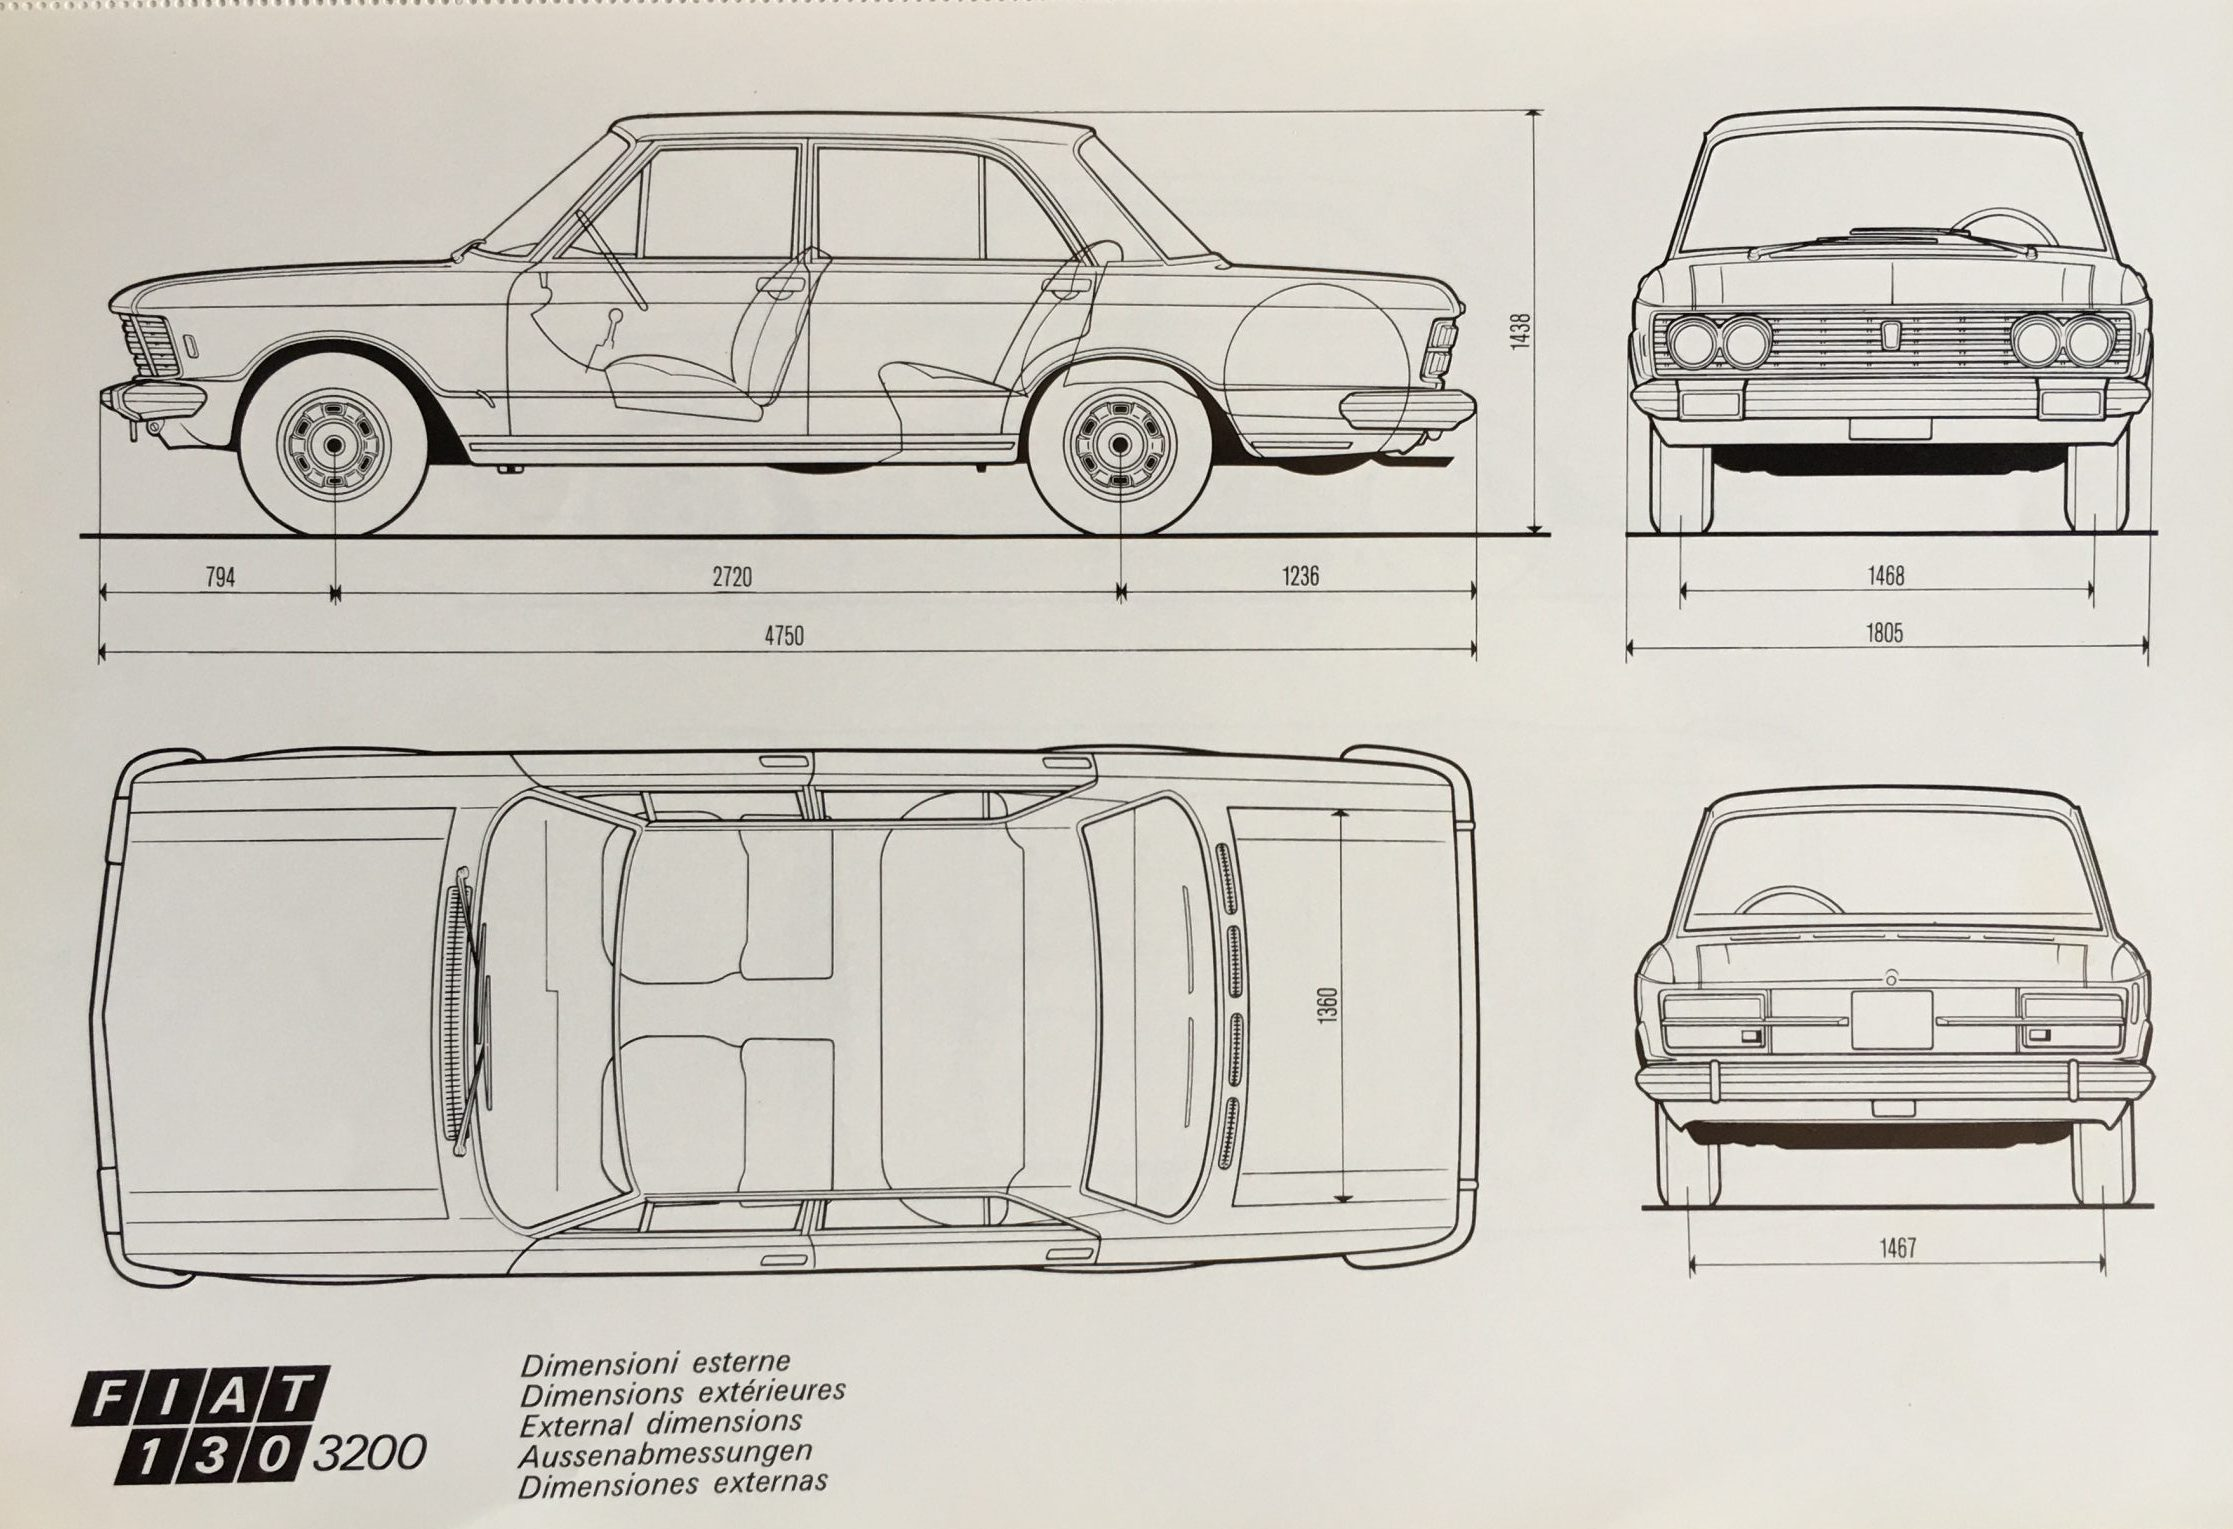 Official press release 130-saloon and coupe